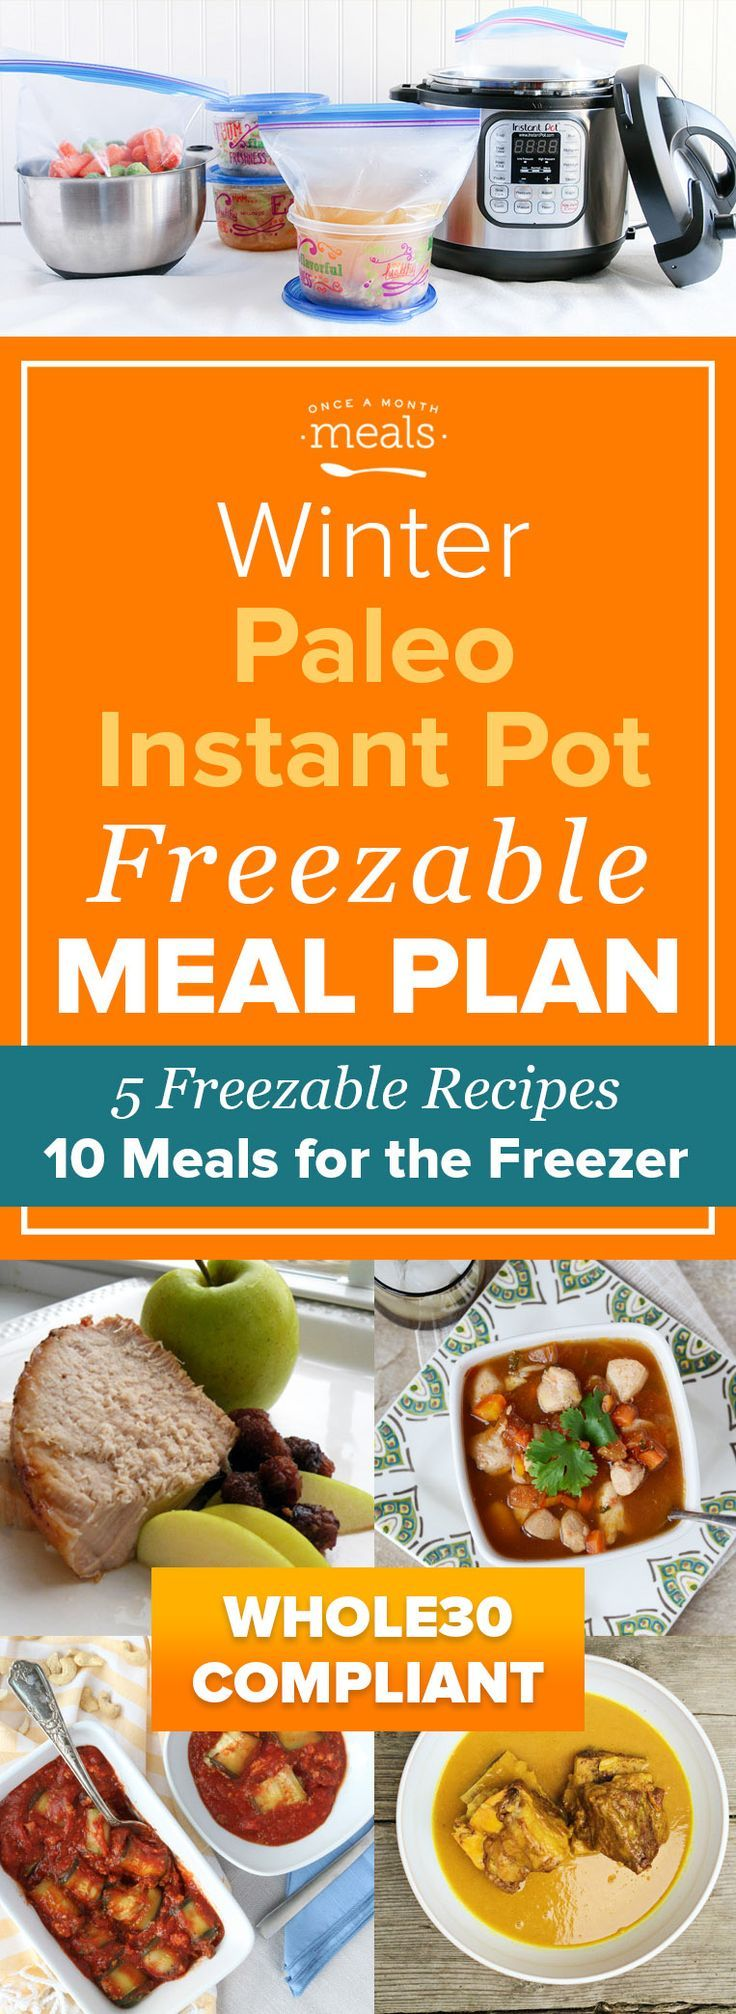 Prepare for your next Whole30 by stocking up on easy Whole30 compliant freezer meals to ensure your success! This Winter Paleo Instant Pot Mini Menu features saucy Turkish Short Ribs, Curried Pork Chops, and Lasagna Roll-ups that can go straight from the